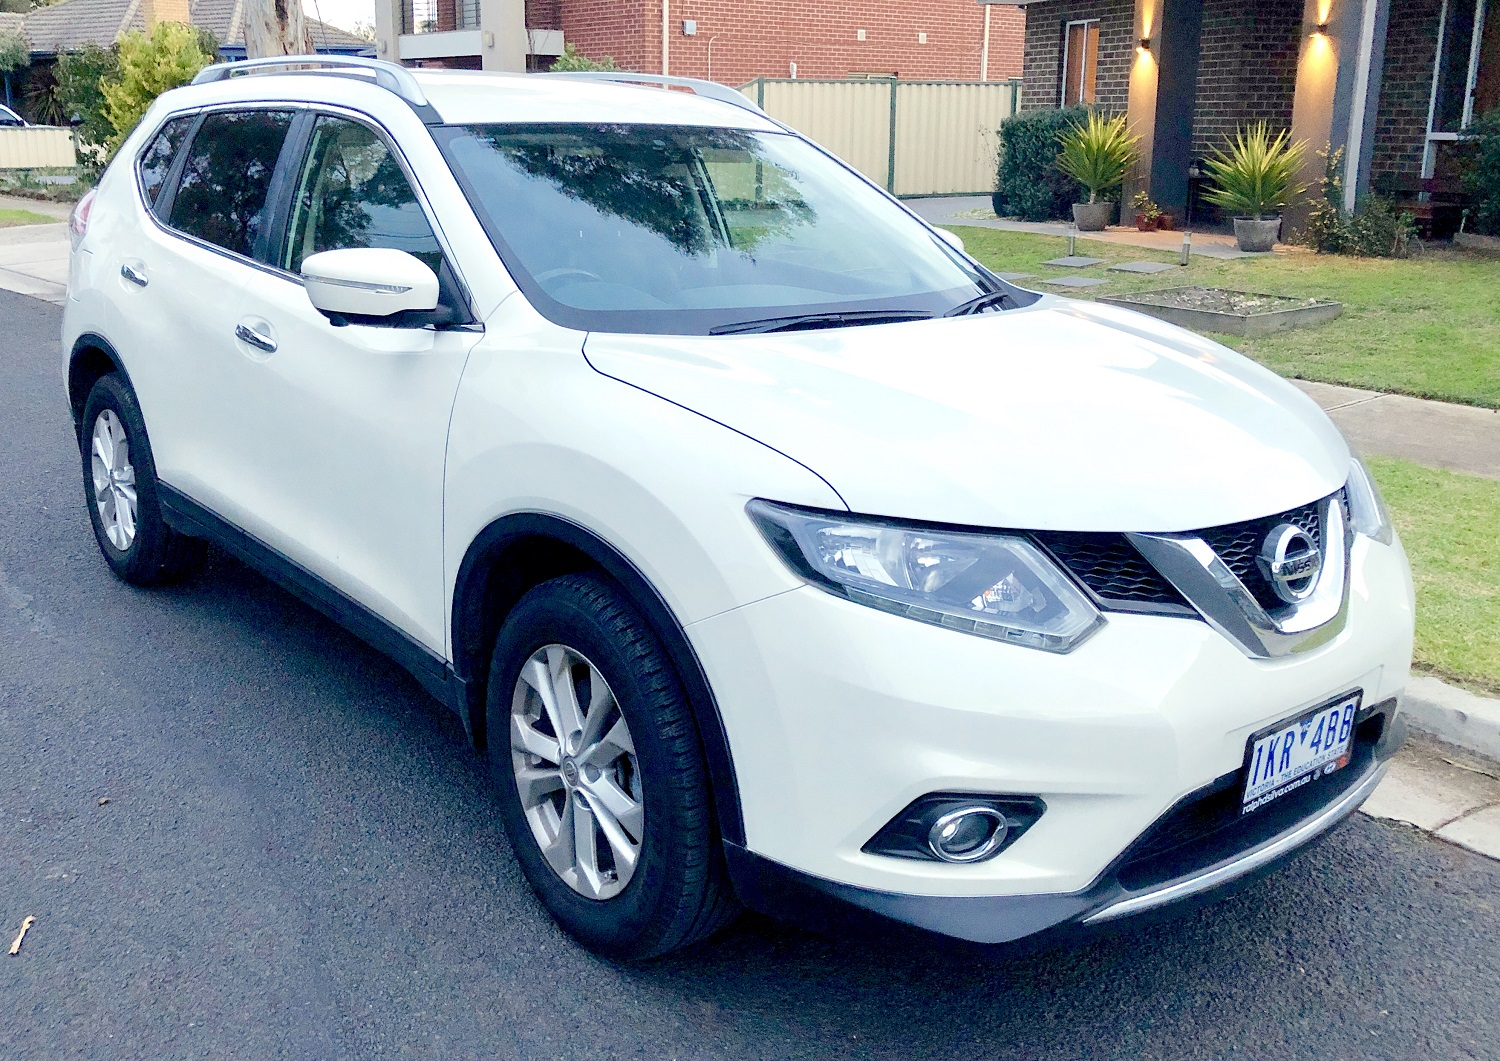 Picture of Han Yu's 2016 Nissan X-trial